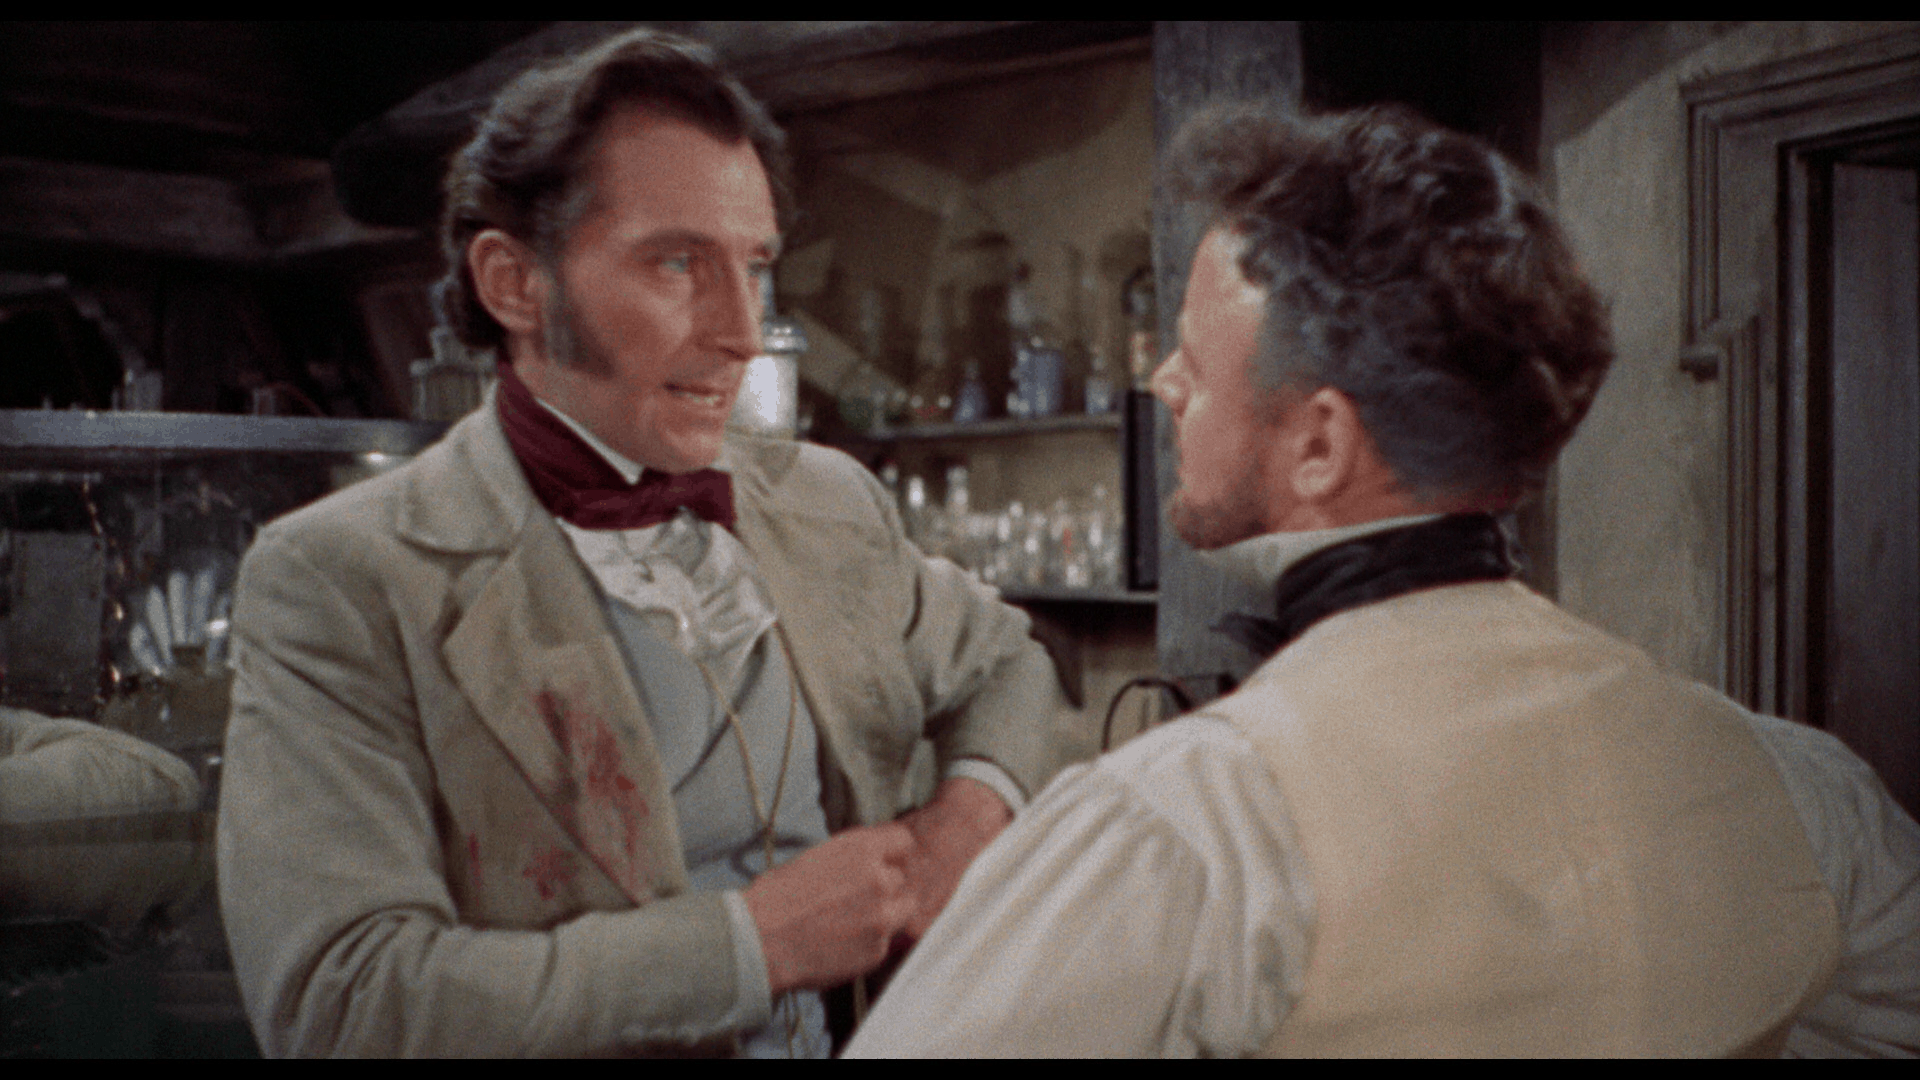 The Curse of Frankenstein (1957) [Warner Archive Blu-ray review] 18